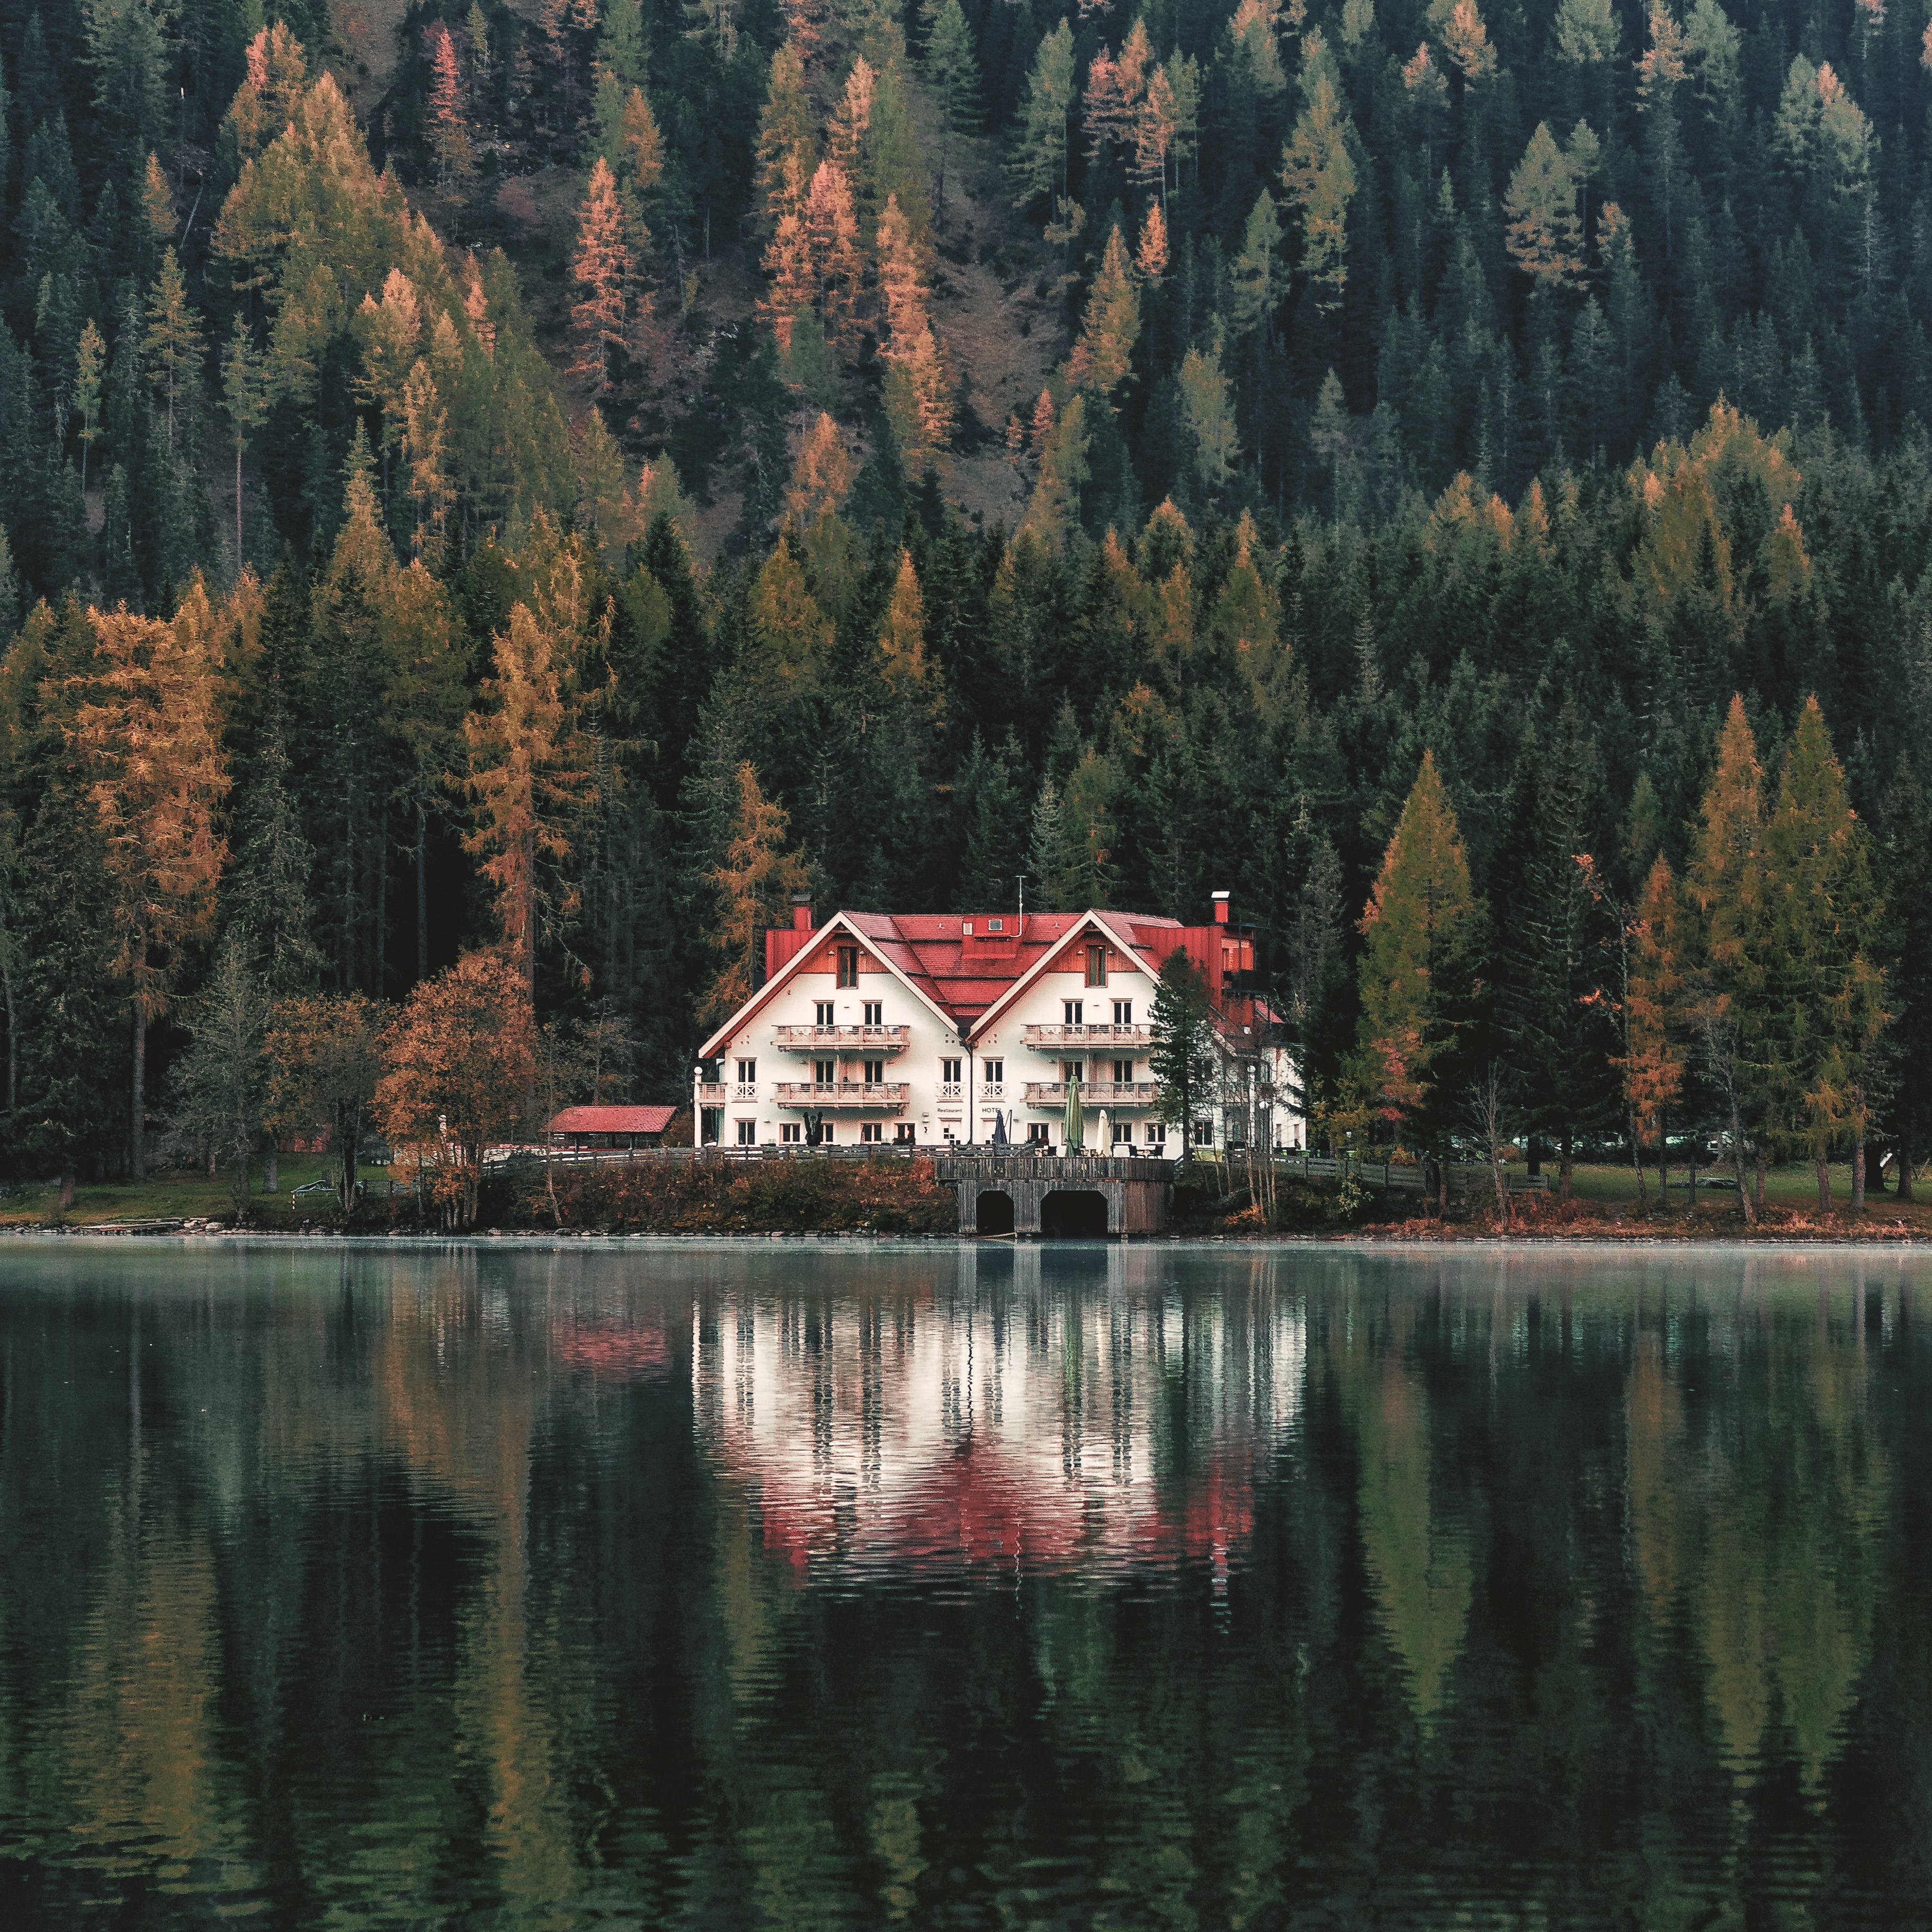 White and Orange House Beside Forest and Body of Water